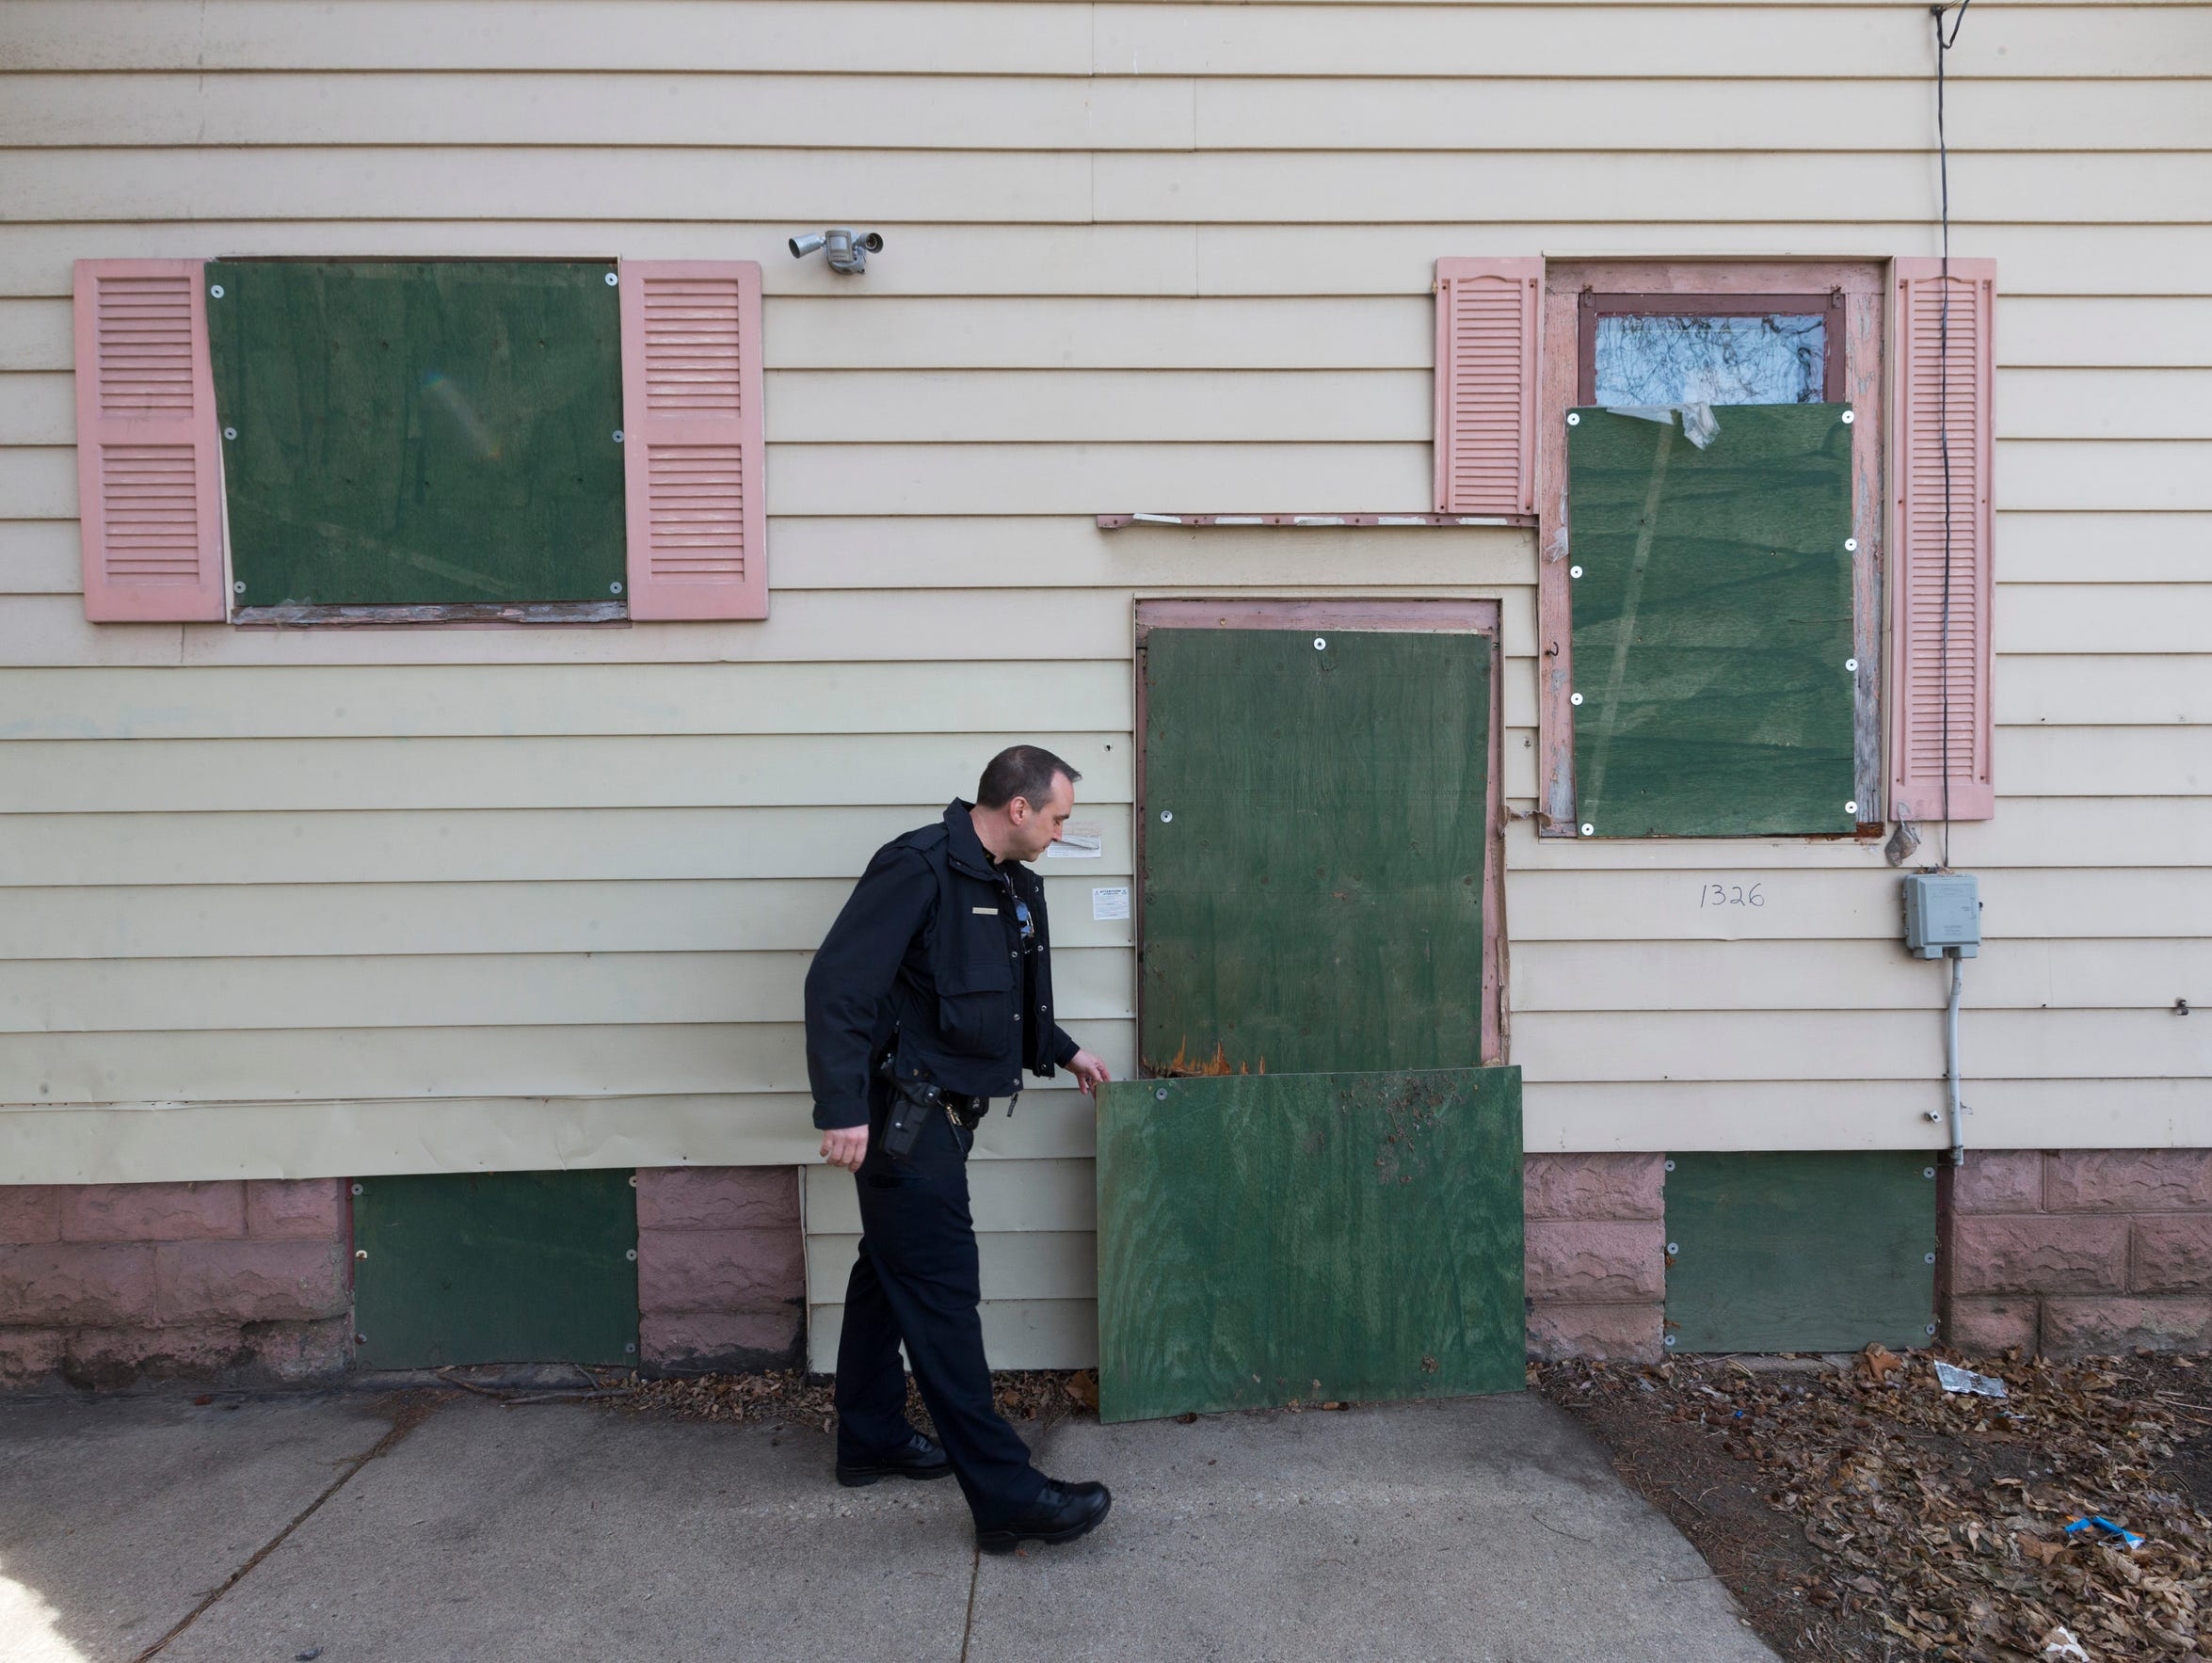 Milwaukee police officer Kevin Vodicka checks the condition of a boarded-up house Friday following a complaint from neighbors near S. 26th St. and W. Greenfield Ave. in Milwaukee.